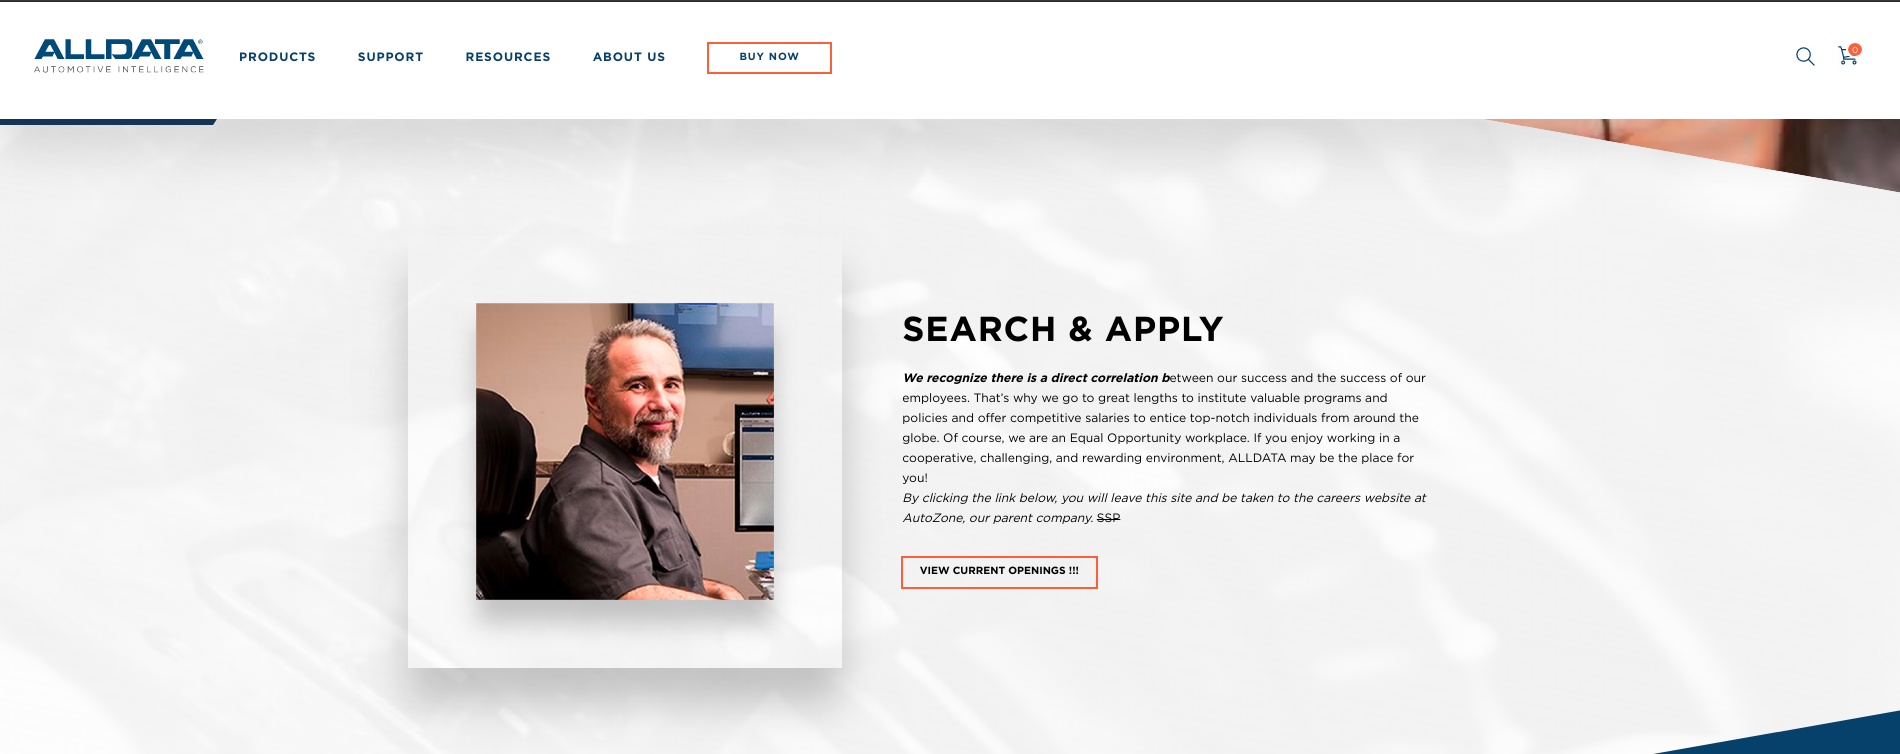 search_apply